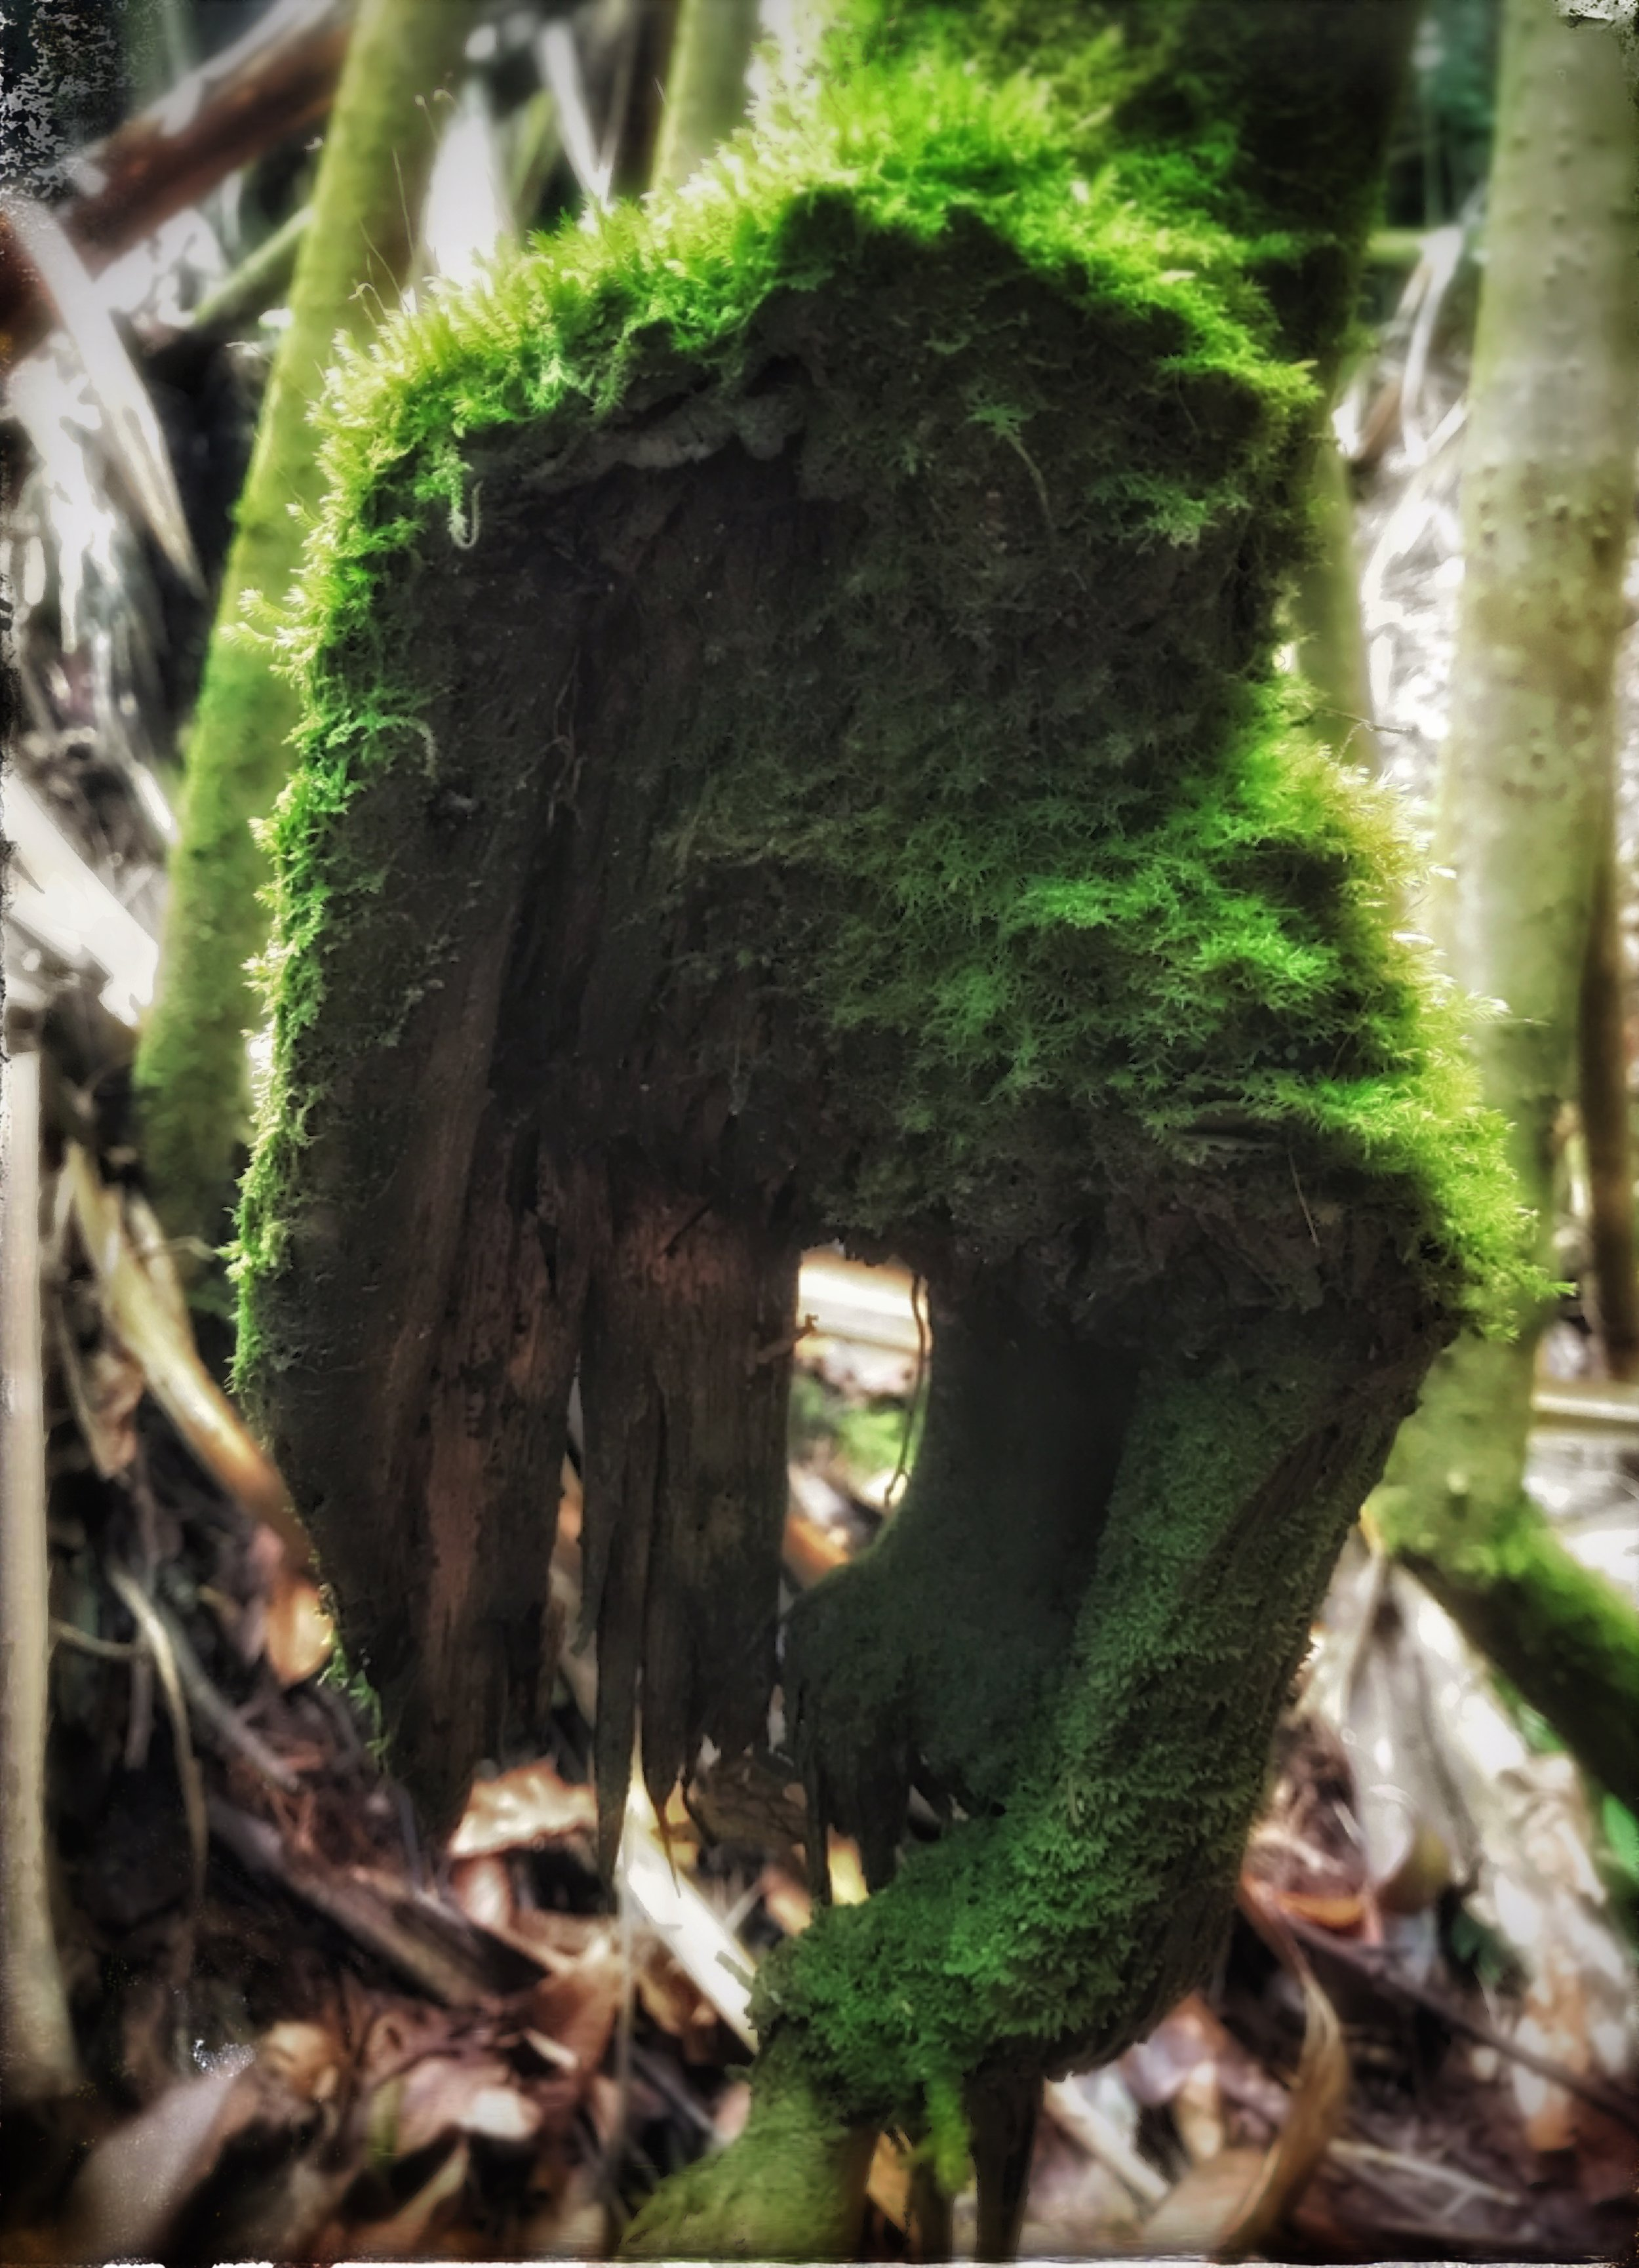 Green Hand of the Forest